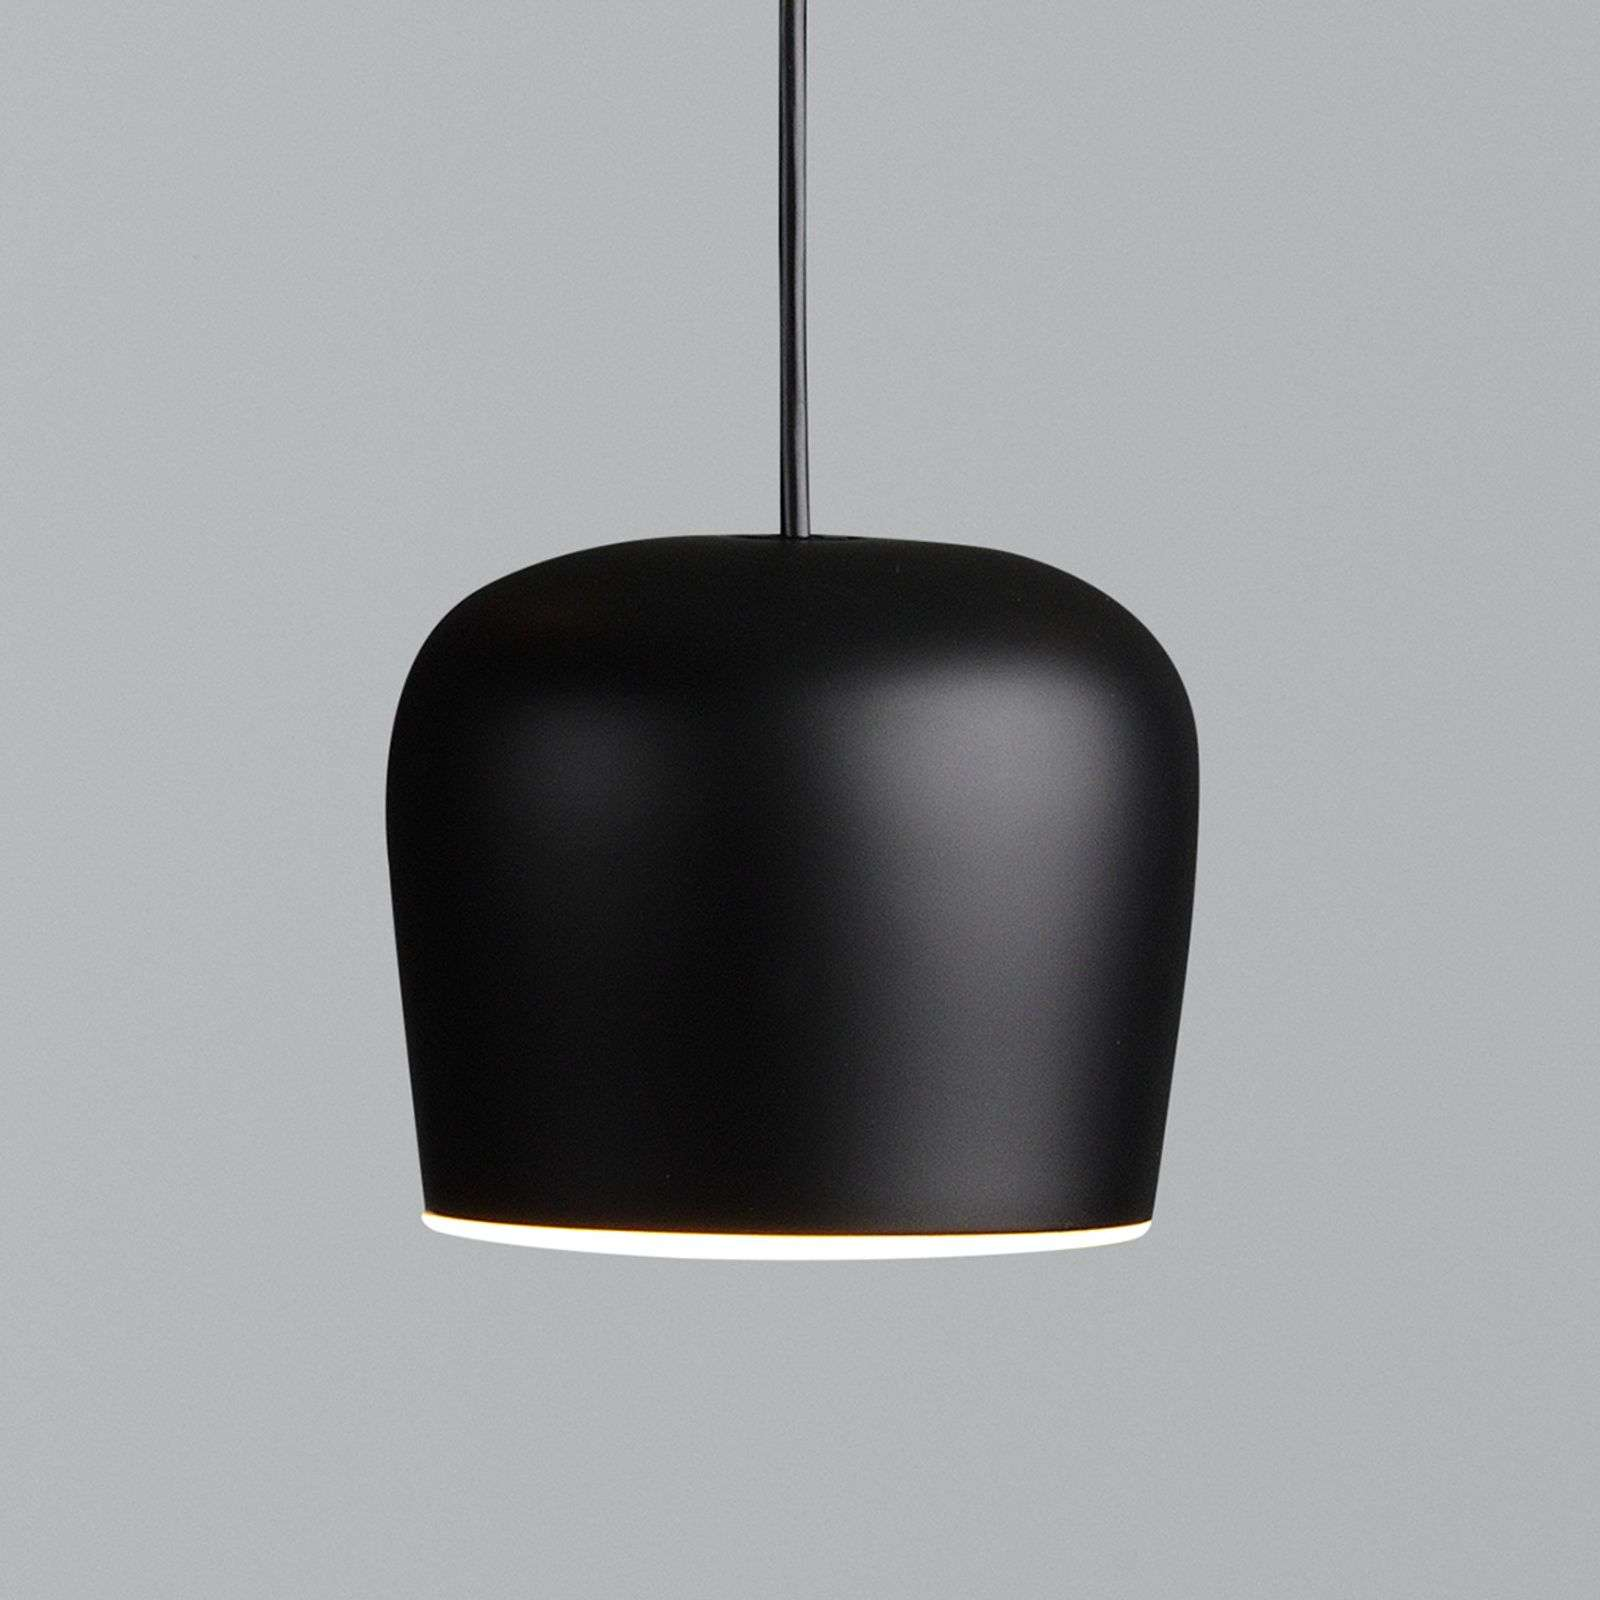 Design hanglamp Aim Small Fix LED, zwart